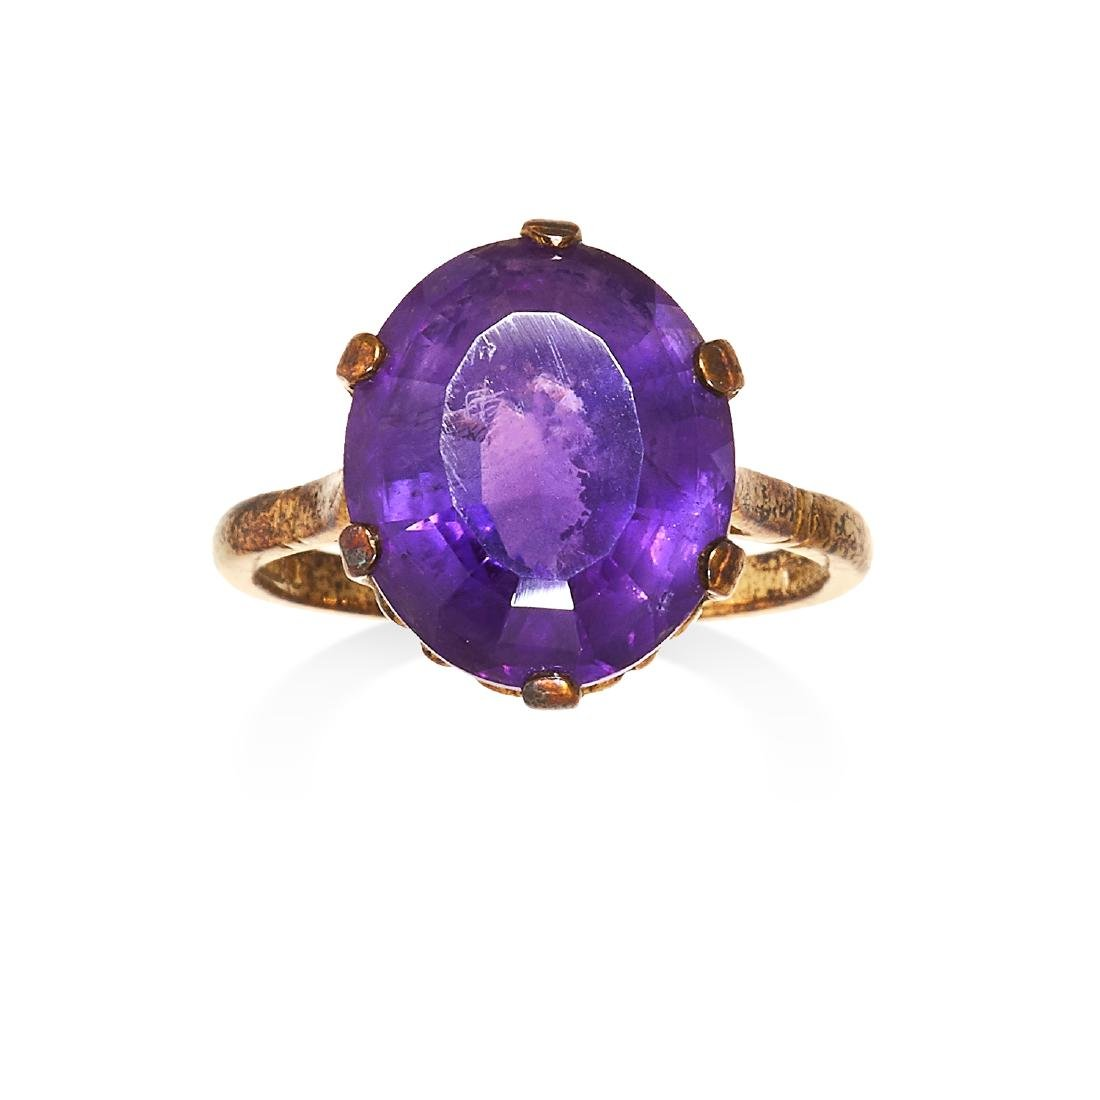 AN AMETHYST DRESS RING yellow gold set with an oval cut